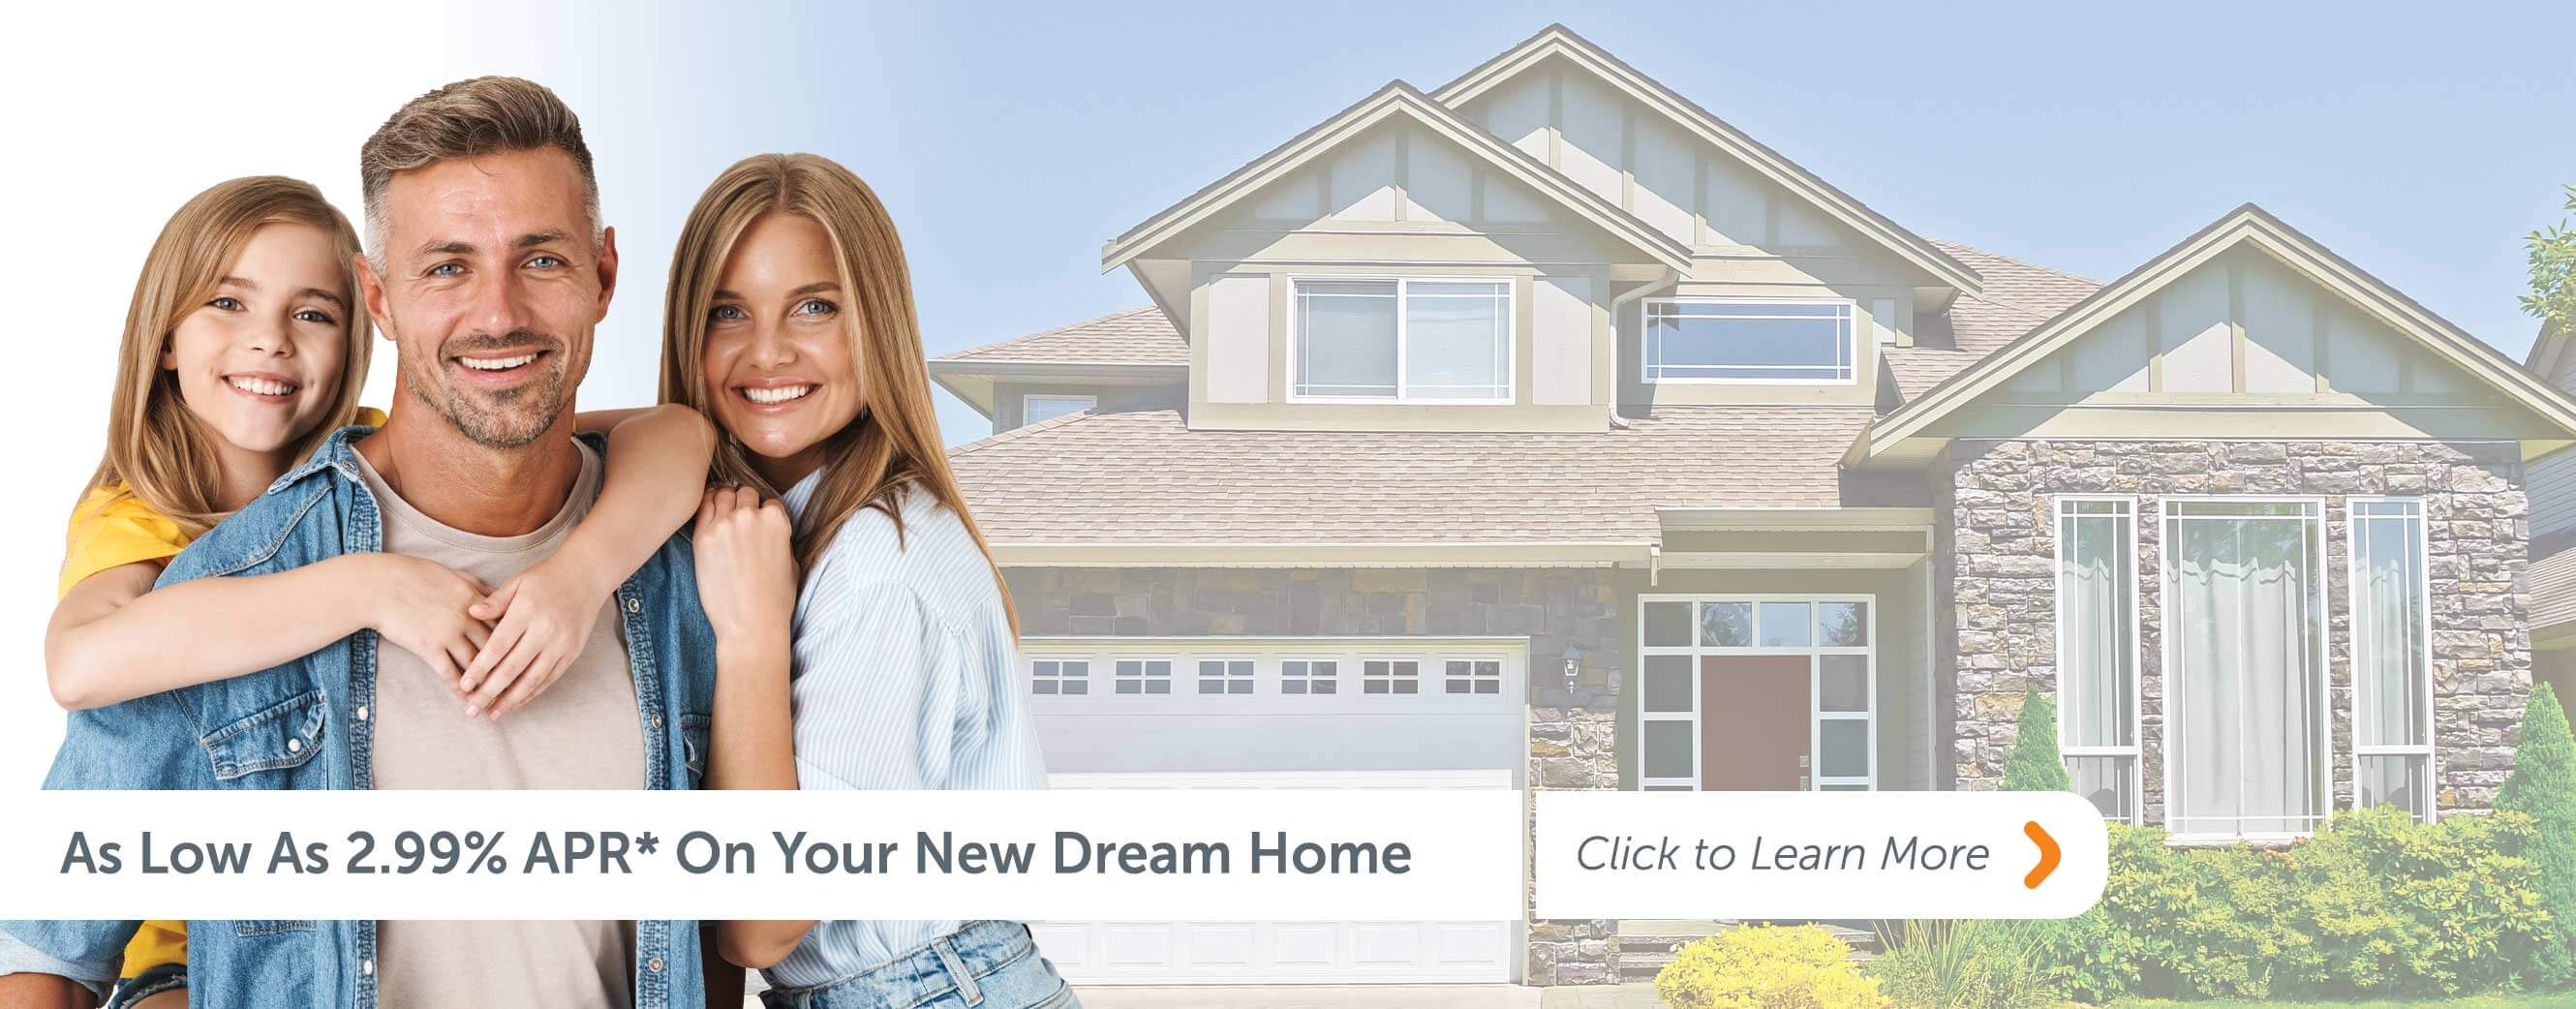 As Low as 2.99% APR* On Your New Dream Home Click to learn more